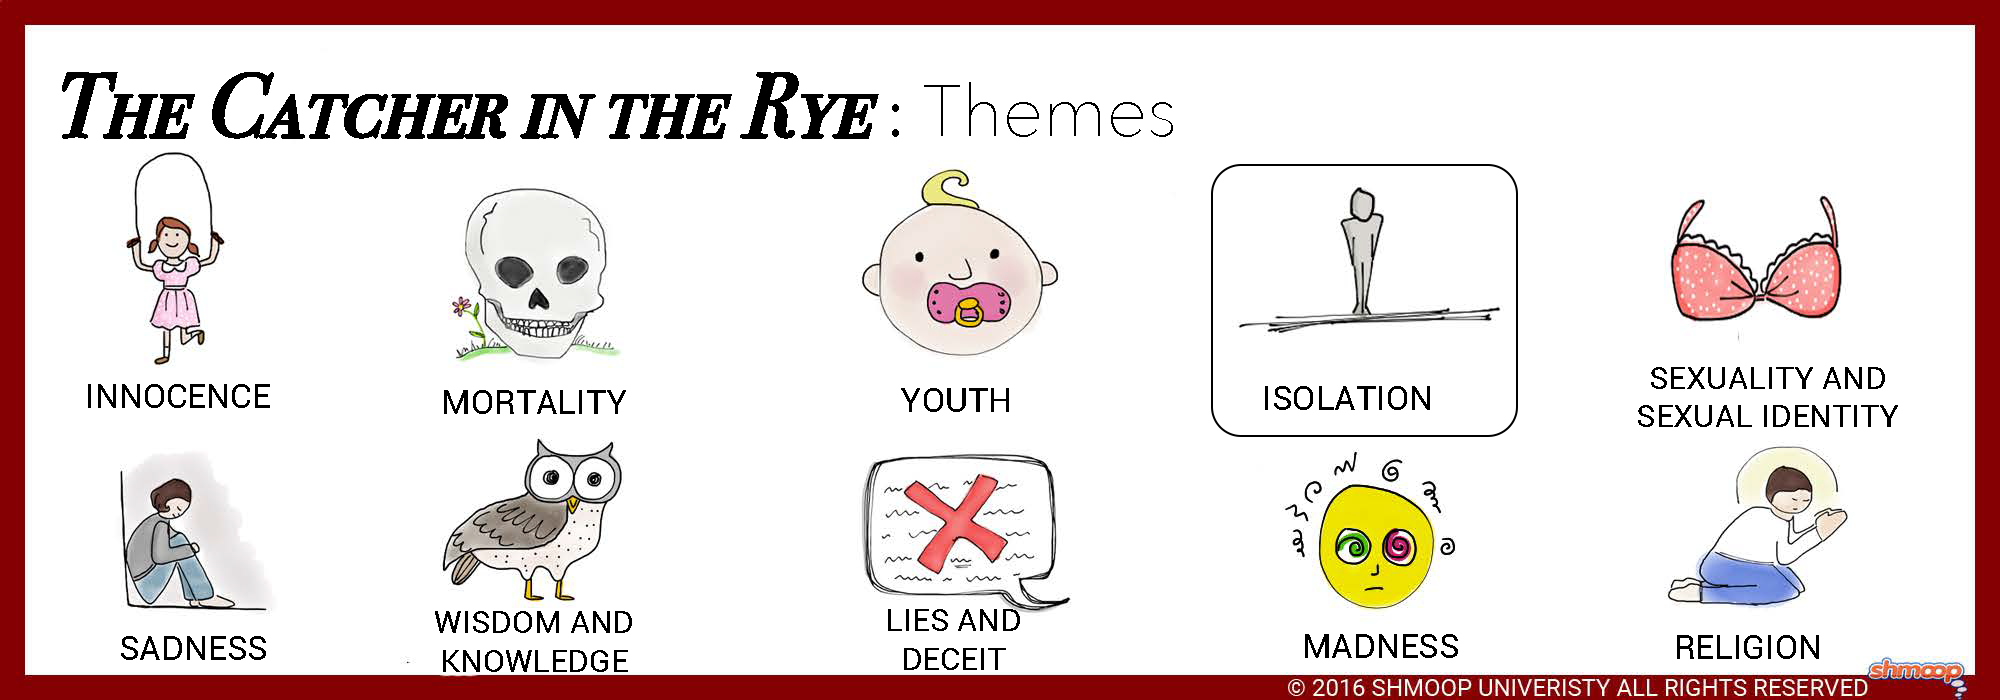 allusion catcher in the rye The catcher in the rye is a novel written by jd salinger  comin' thro' the rye is an allusion used by salinger to describe how children are innocent and.